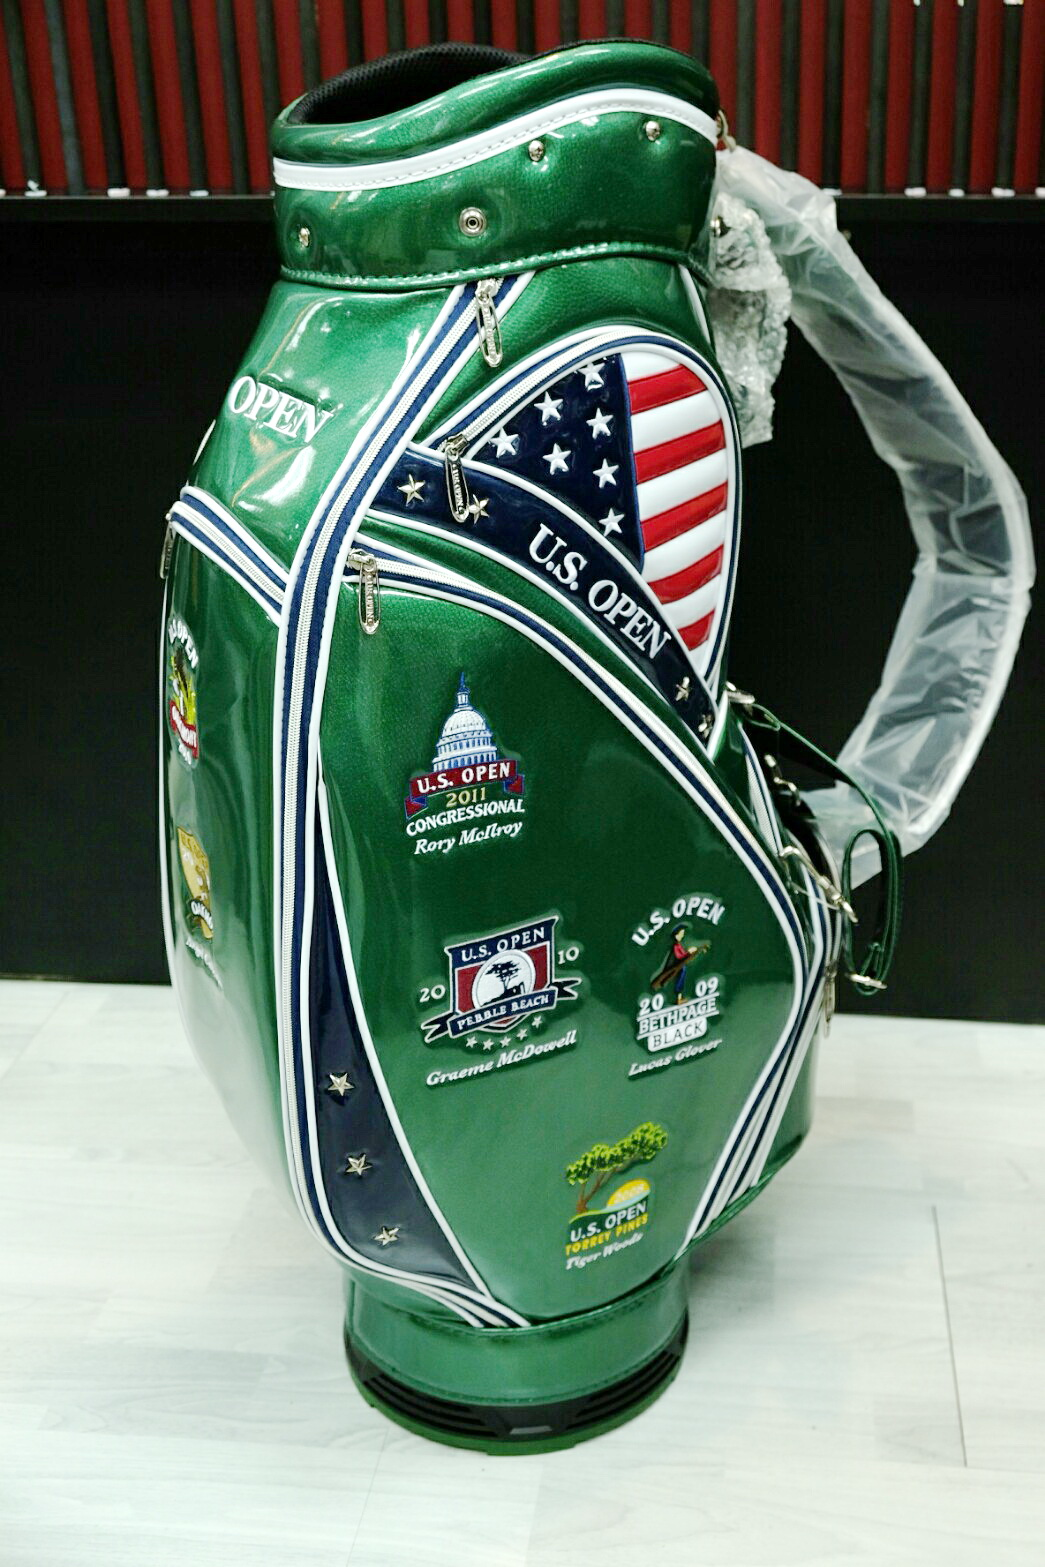 Golf Bag U.S Open Japan (Green)